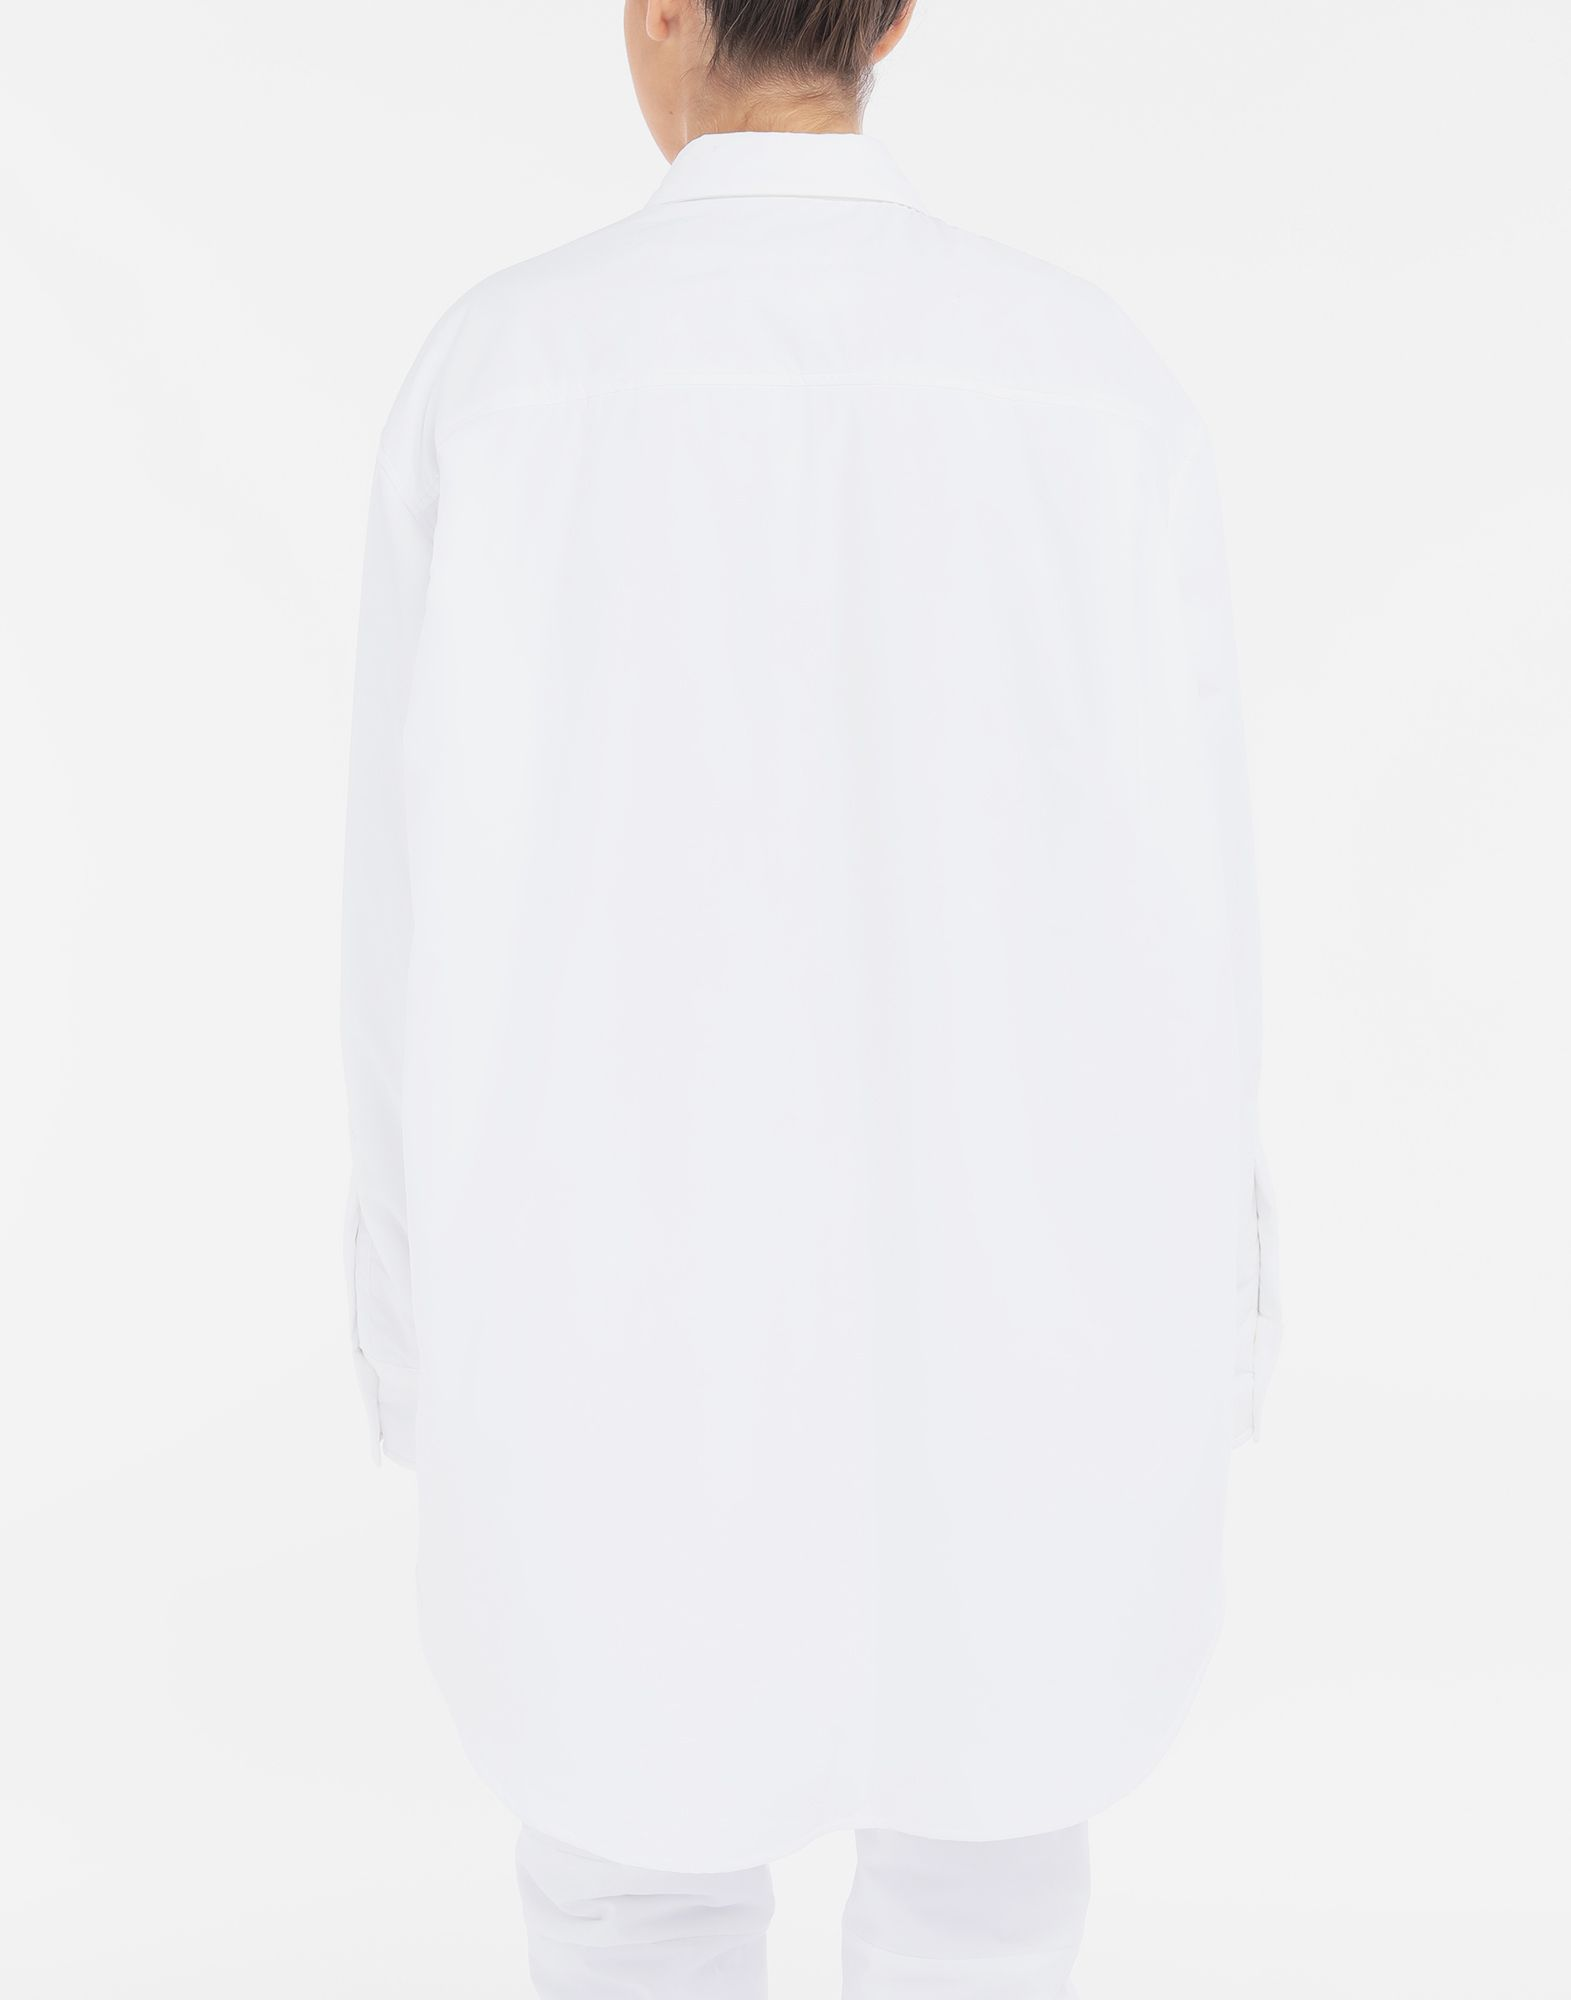 MM6 MAISON MARGIELA Padded oversized shirt Long sleeve shirt Woman e